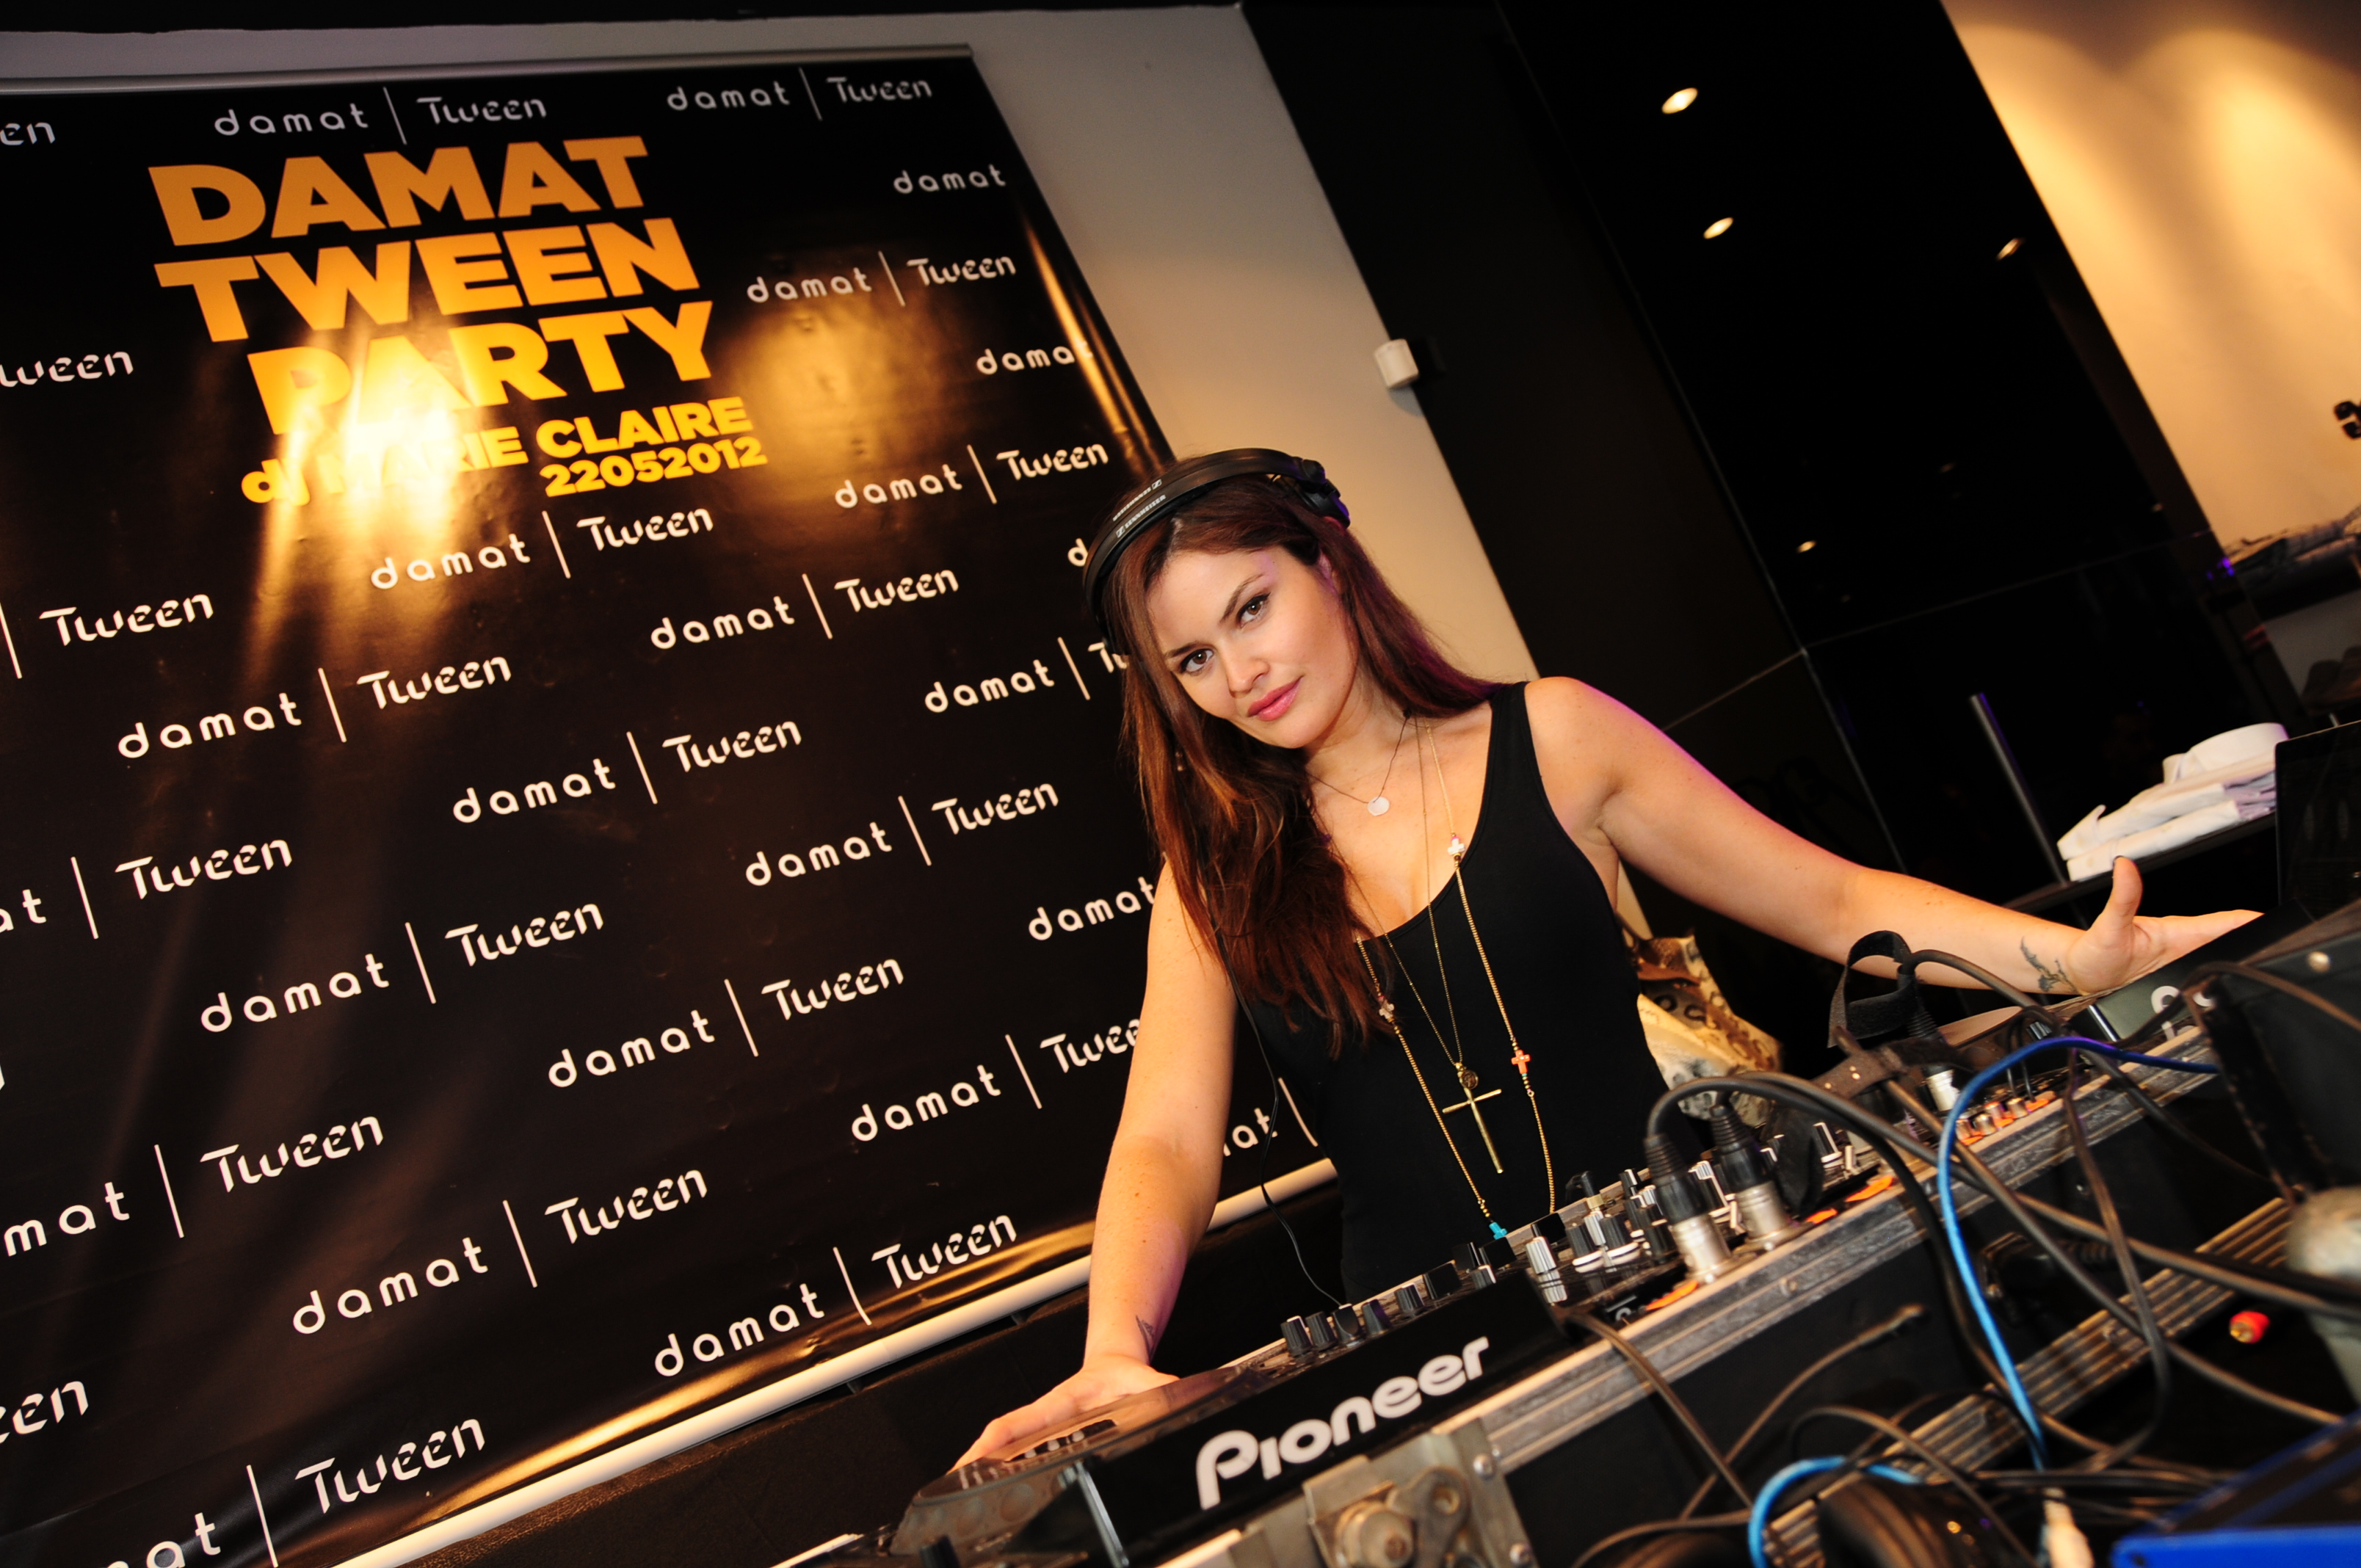 DJ MarieClaire: Damat Tween is ´IN-THE-MIX´